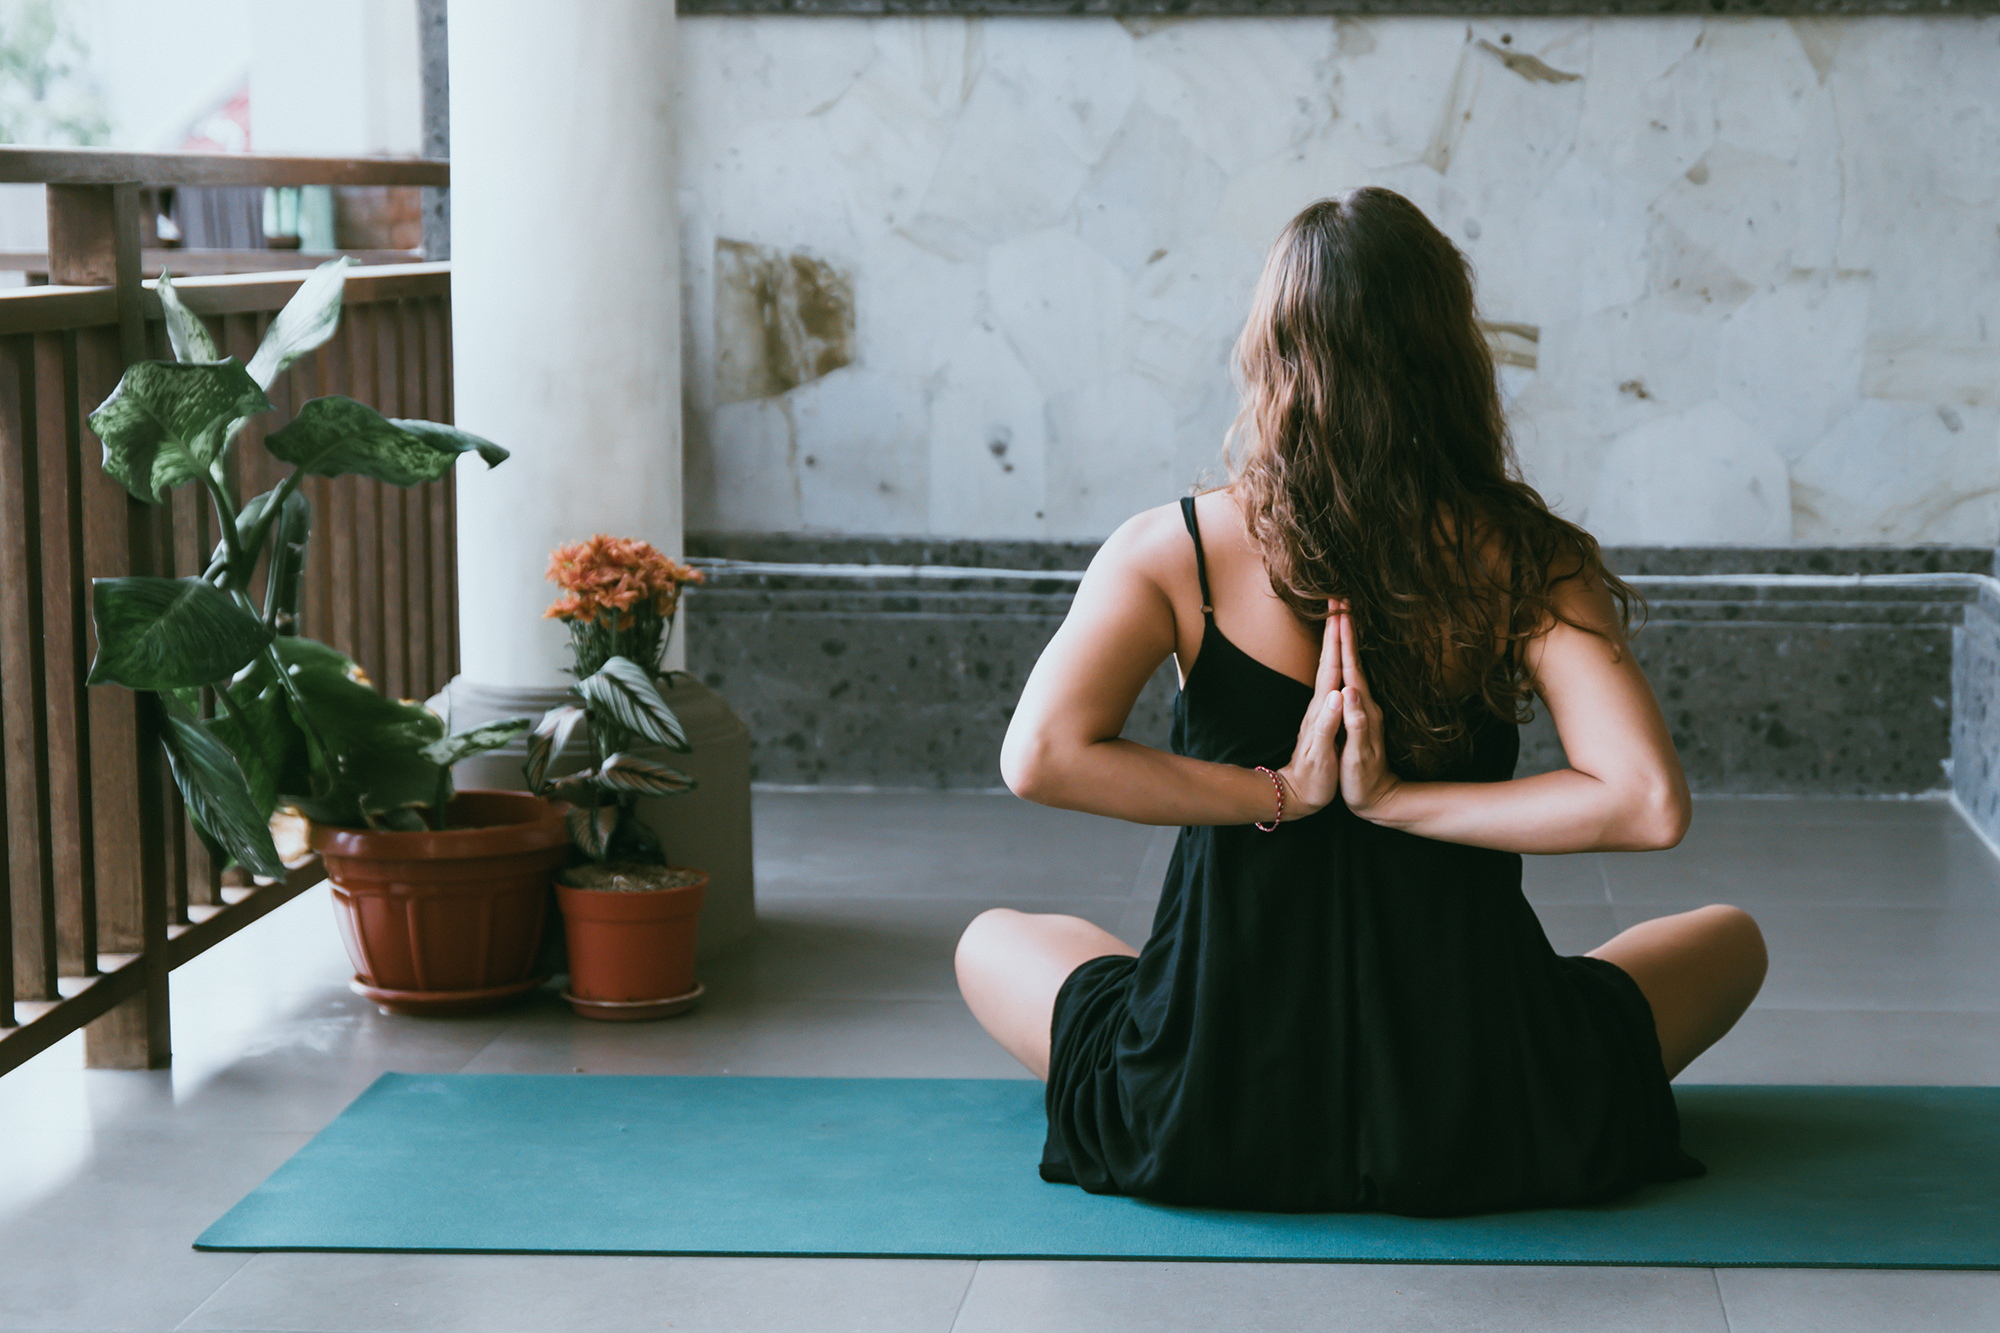 Image of woman in yoga pose with arms behind her back